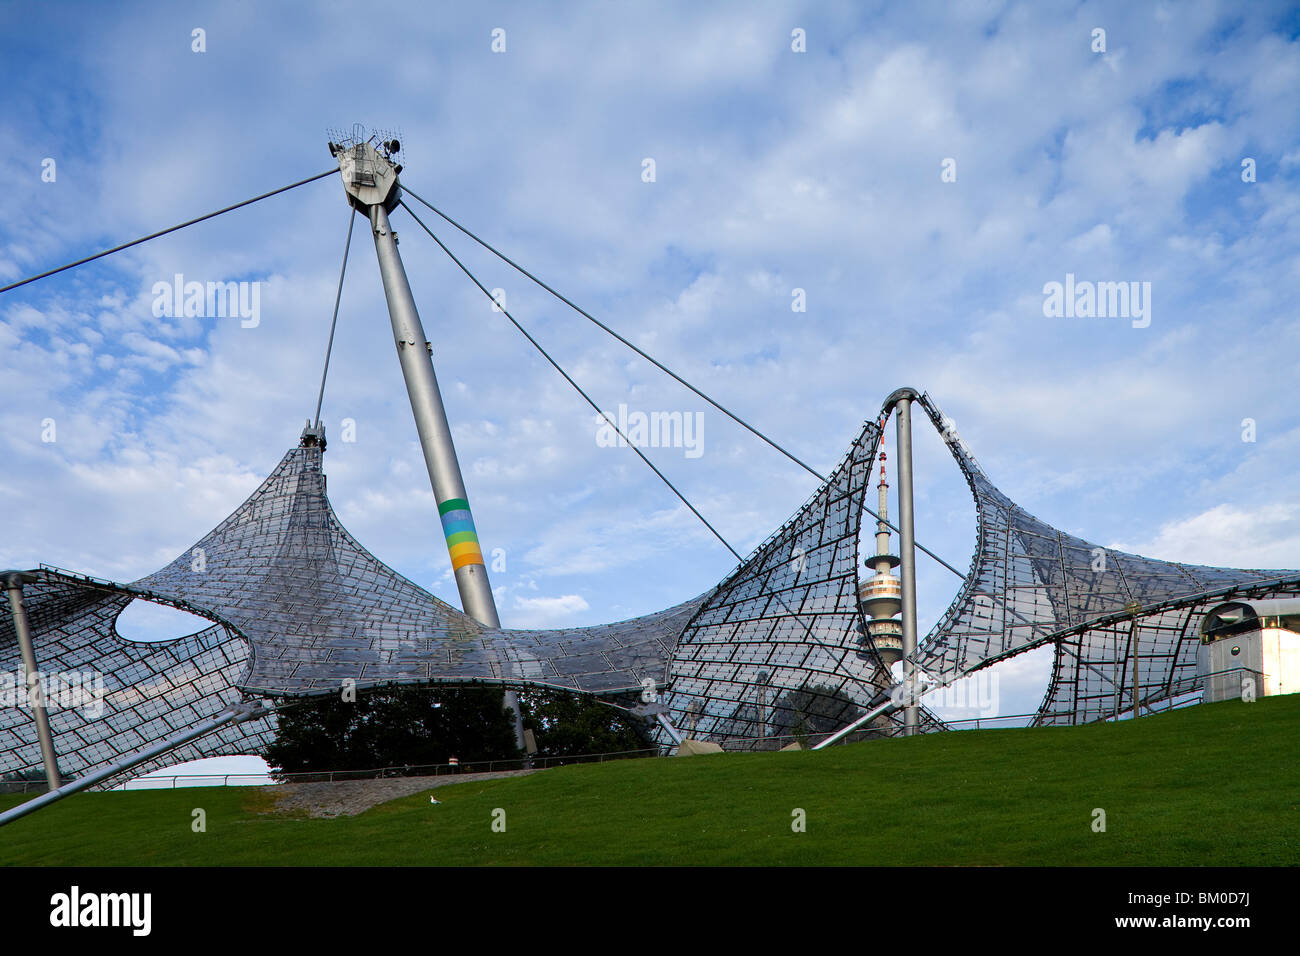 Olympia Park with Olympic tower, Munich, Upper Bavaria, Bavaria, Germany, Europe - Stock Image